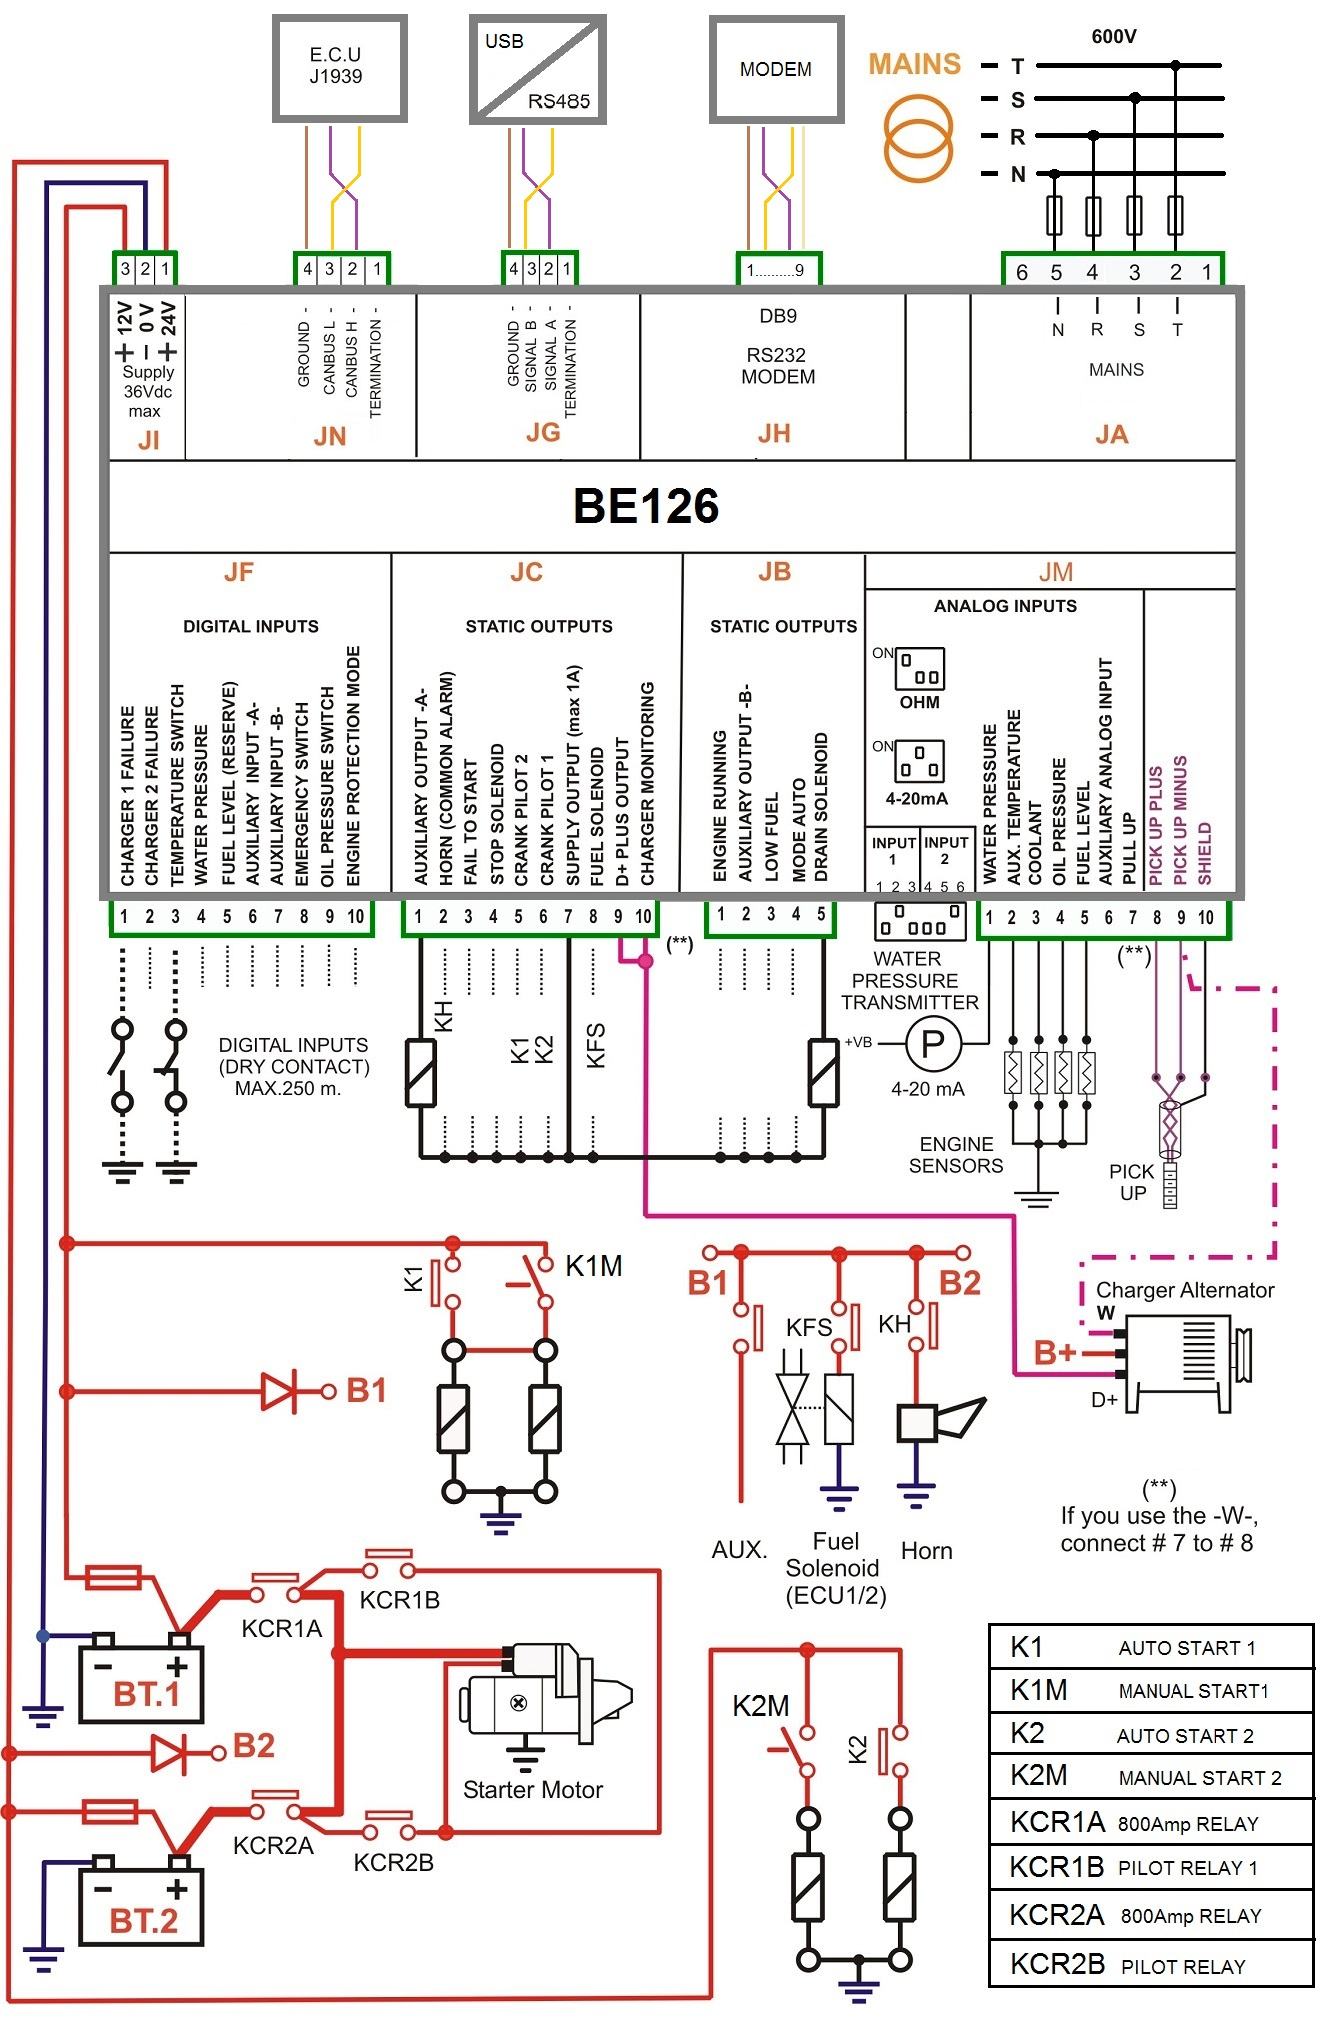 NFPA20 fire pump controller wiring diagram electrical control wiring diagram electrical service diagrams electrical control wiring diagram pdf at cos-gaming.co